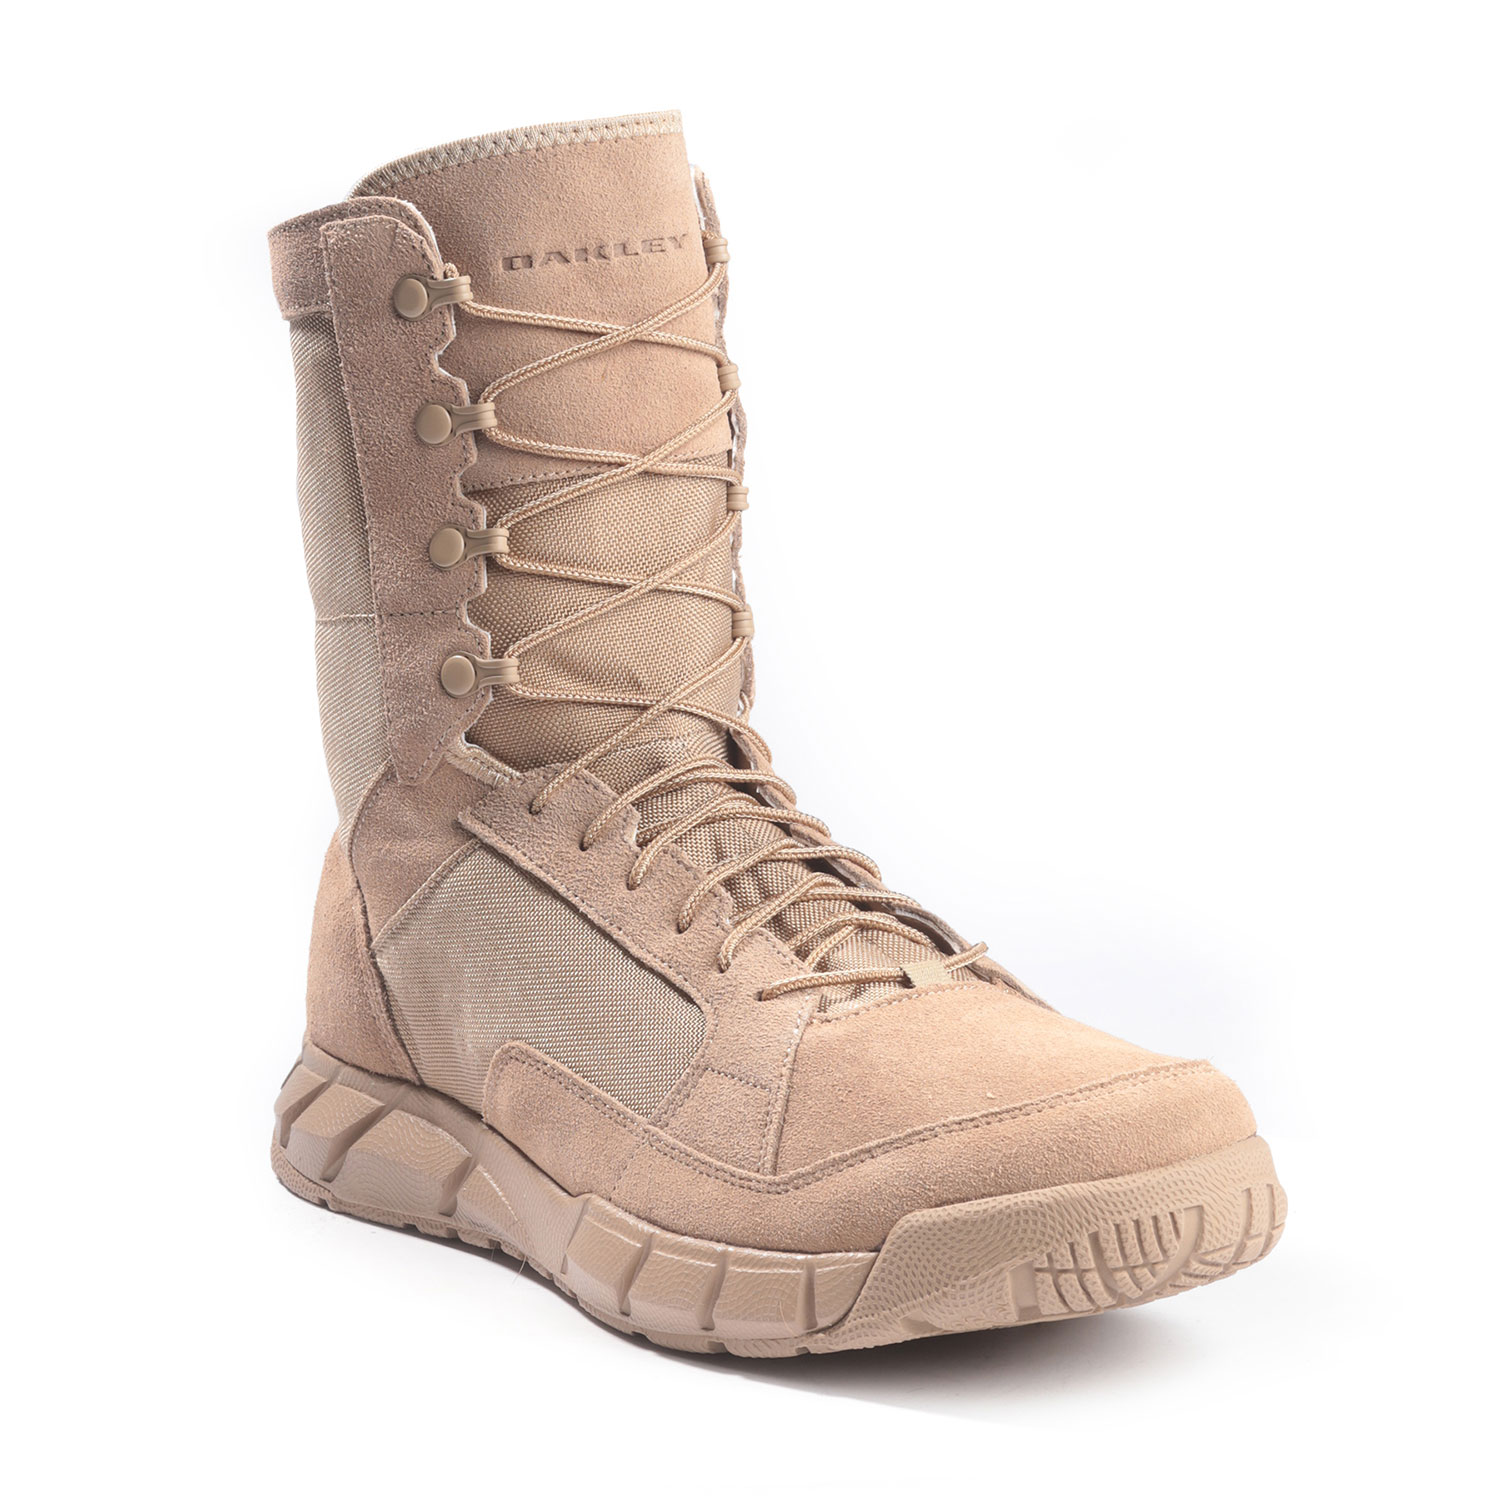 Oakley Light Assault Boot 2 Coyote Sage Amp Tan Army Boot